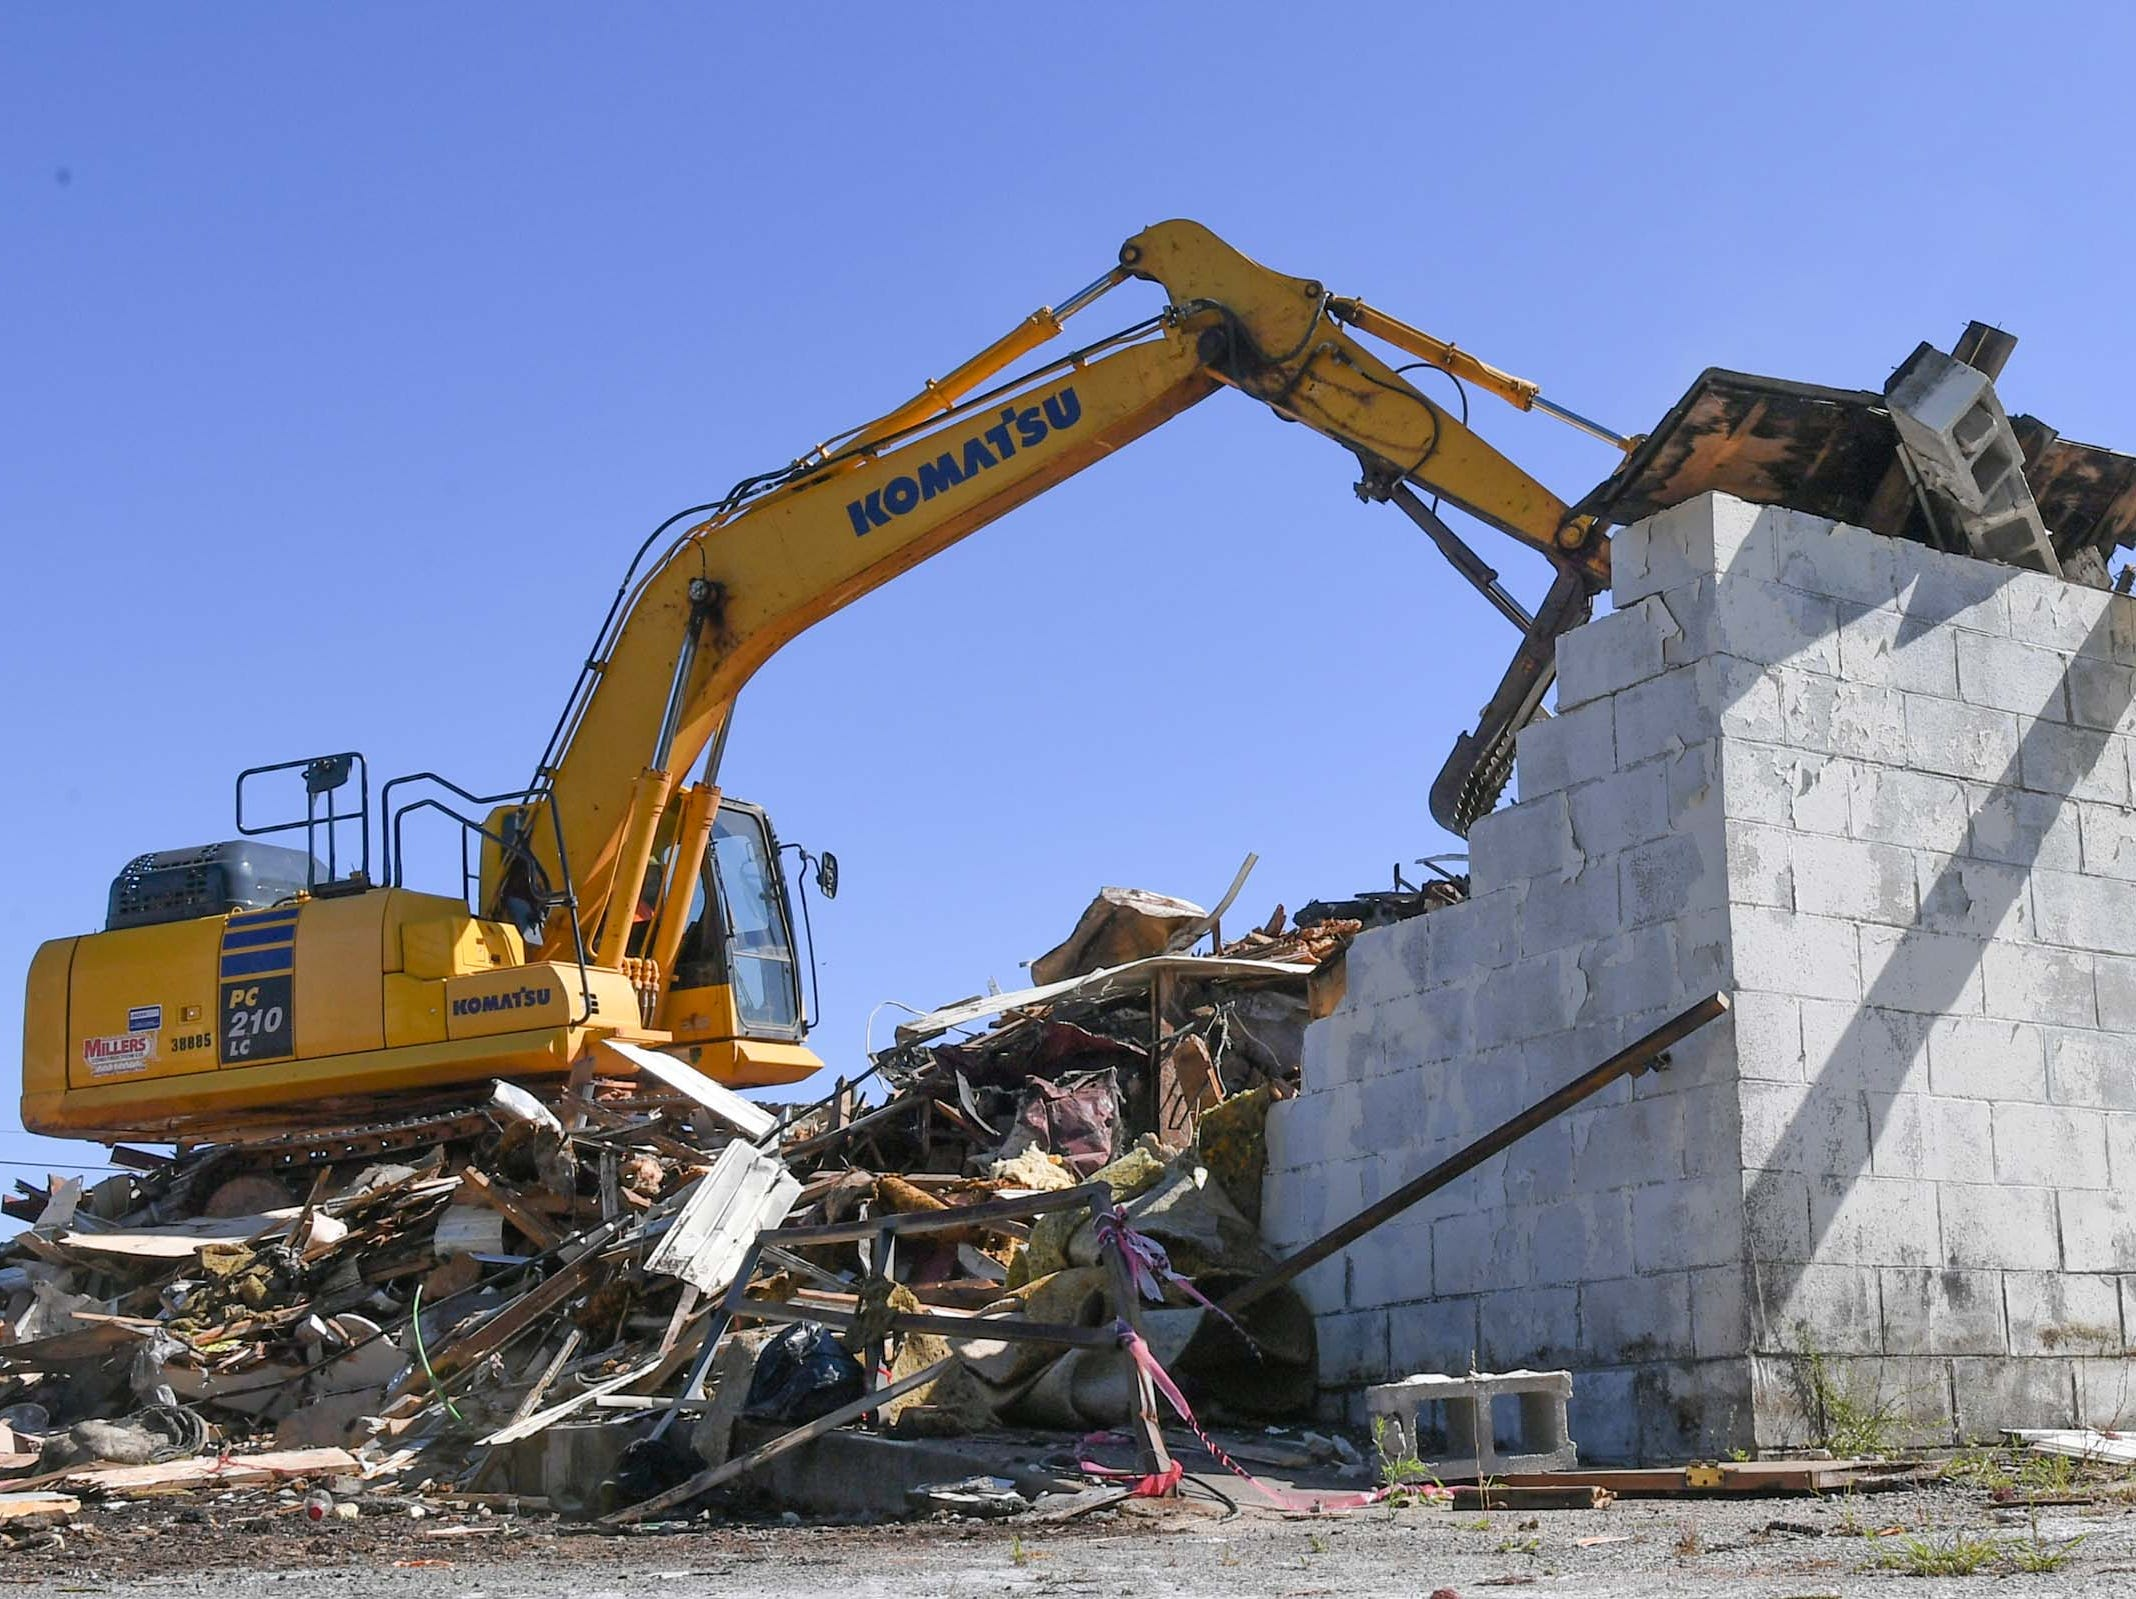 Miller Construction of Anderson demolishes the 600 South Main Street building Monday in Anderson. The building was used as a city planning and codes for years after McDougalds Funeral Home occupied it from 1934 to 1968 as their South Chapel.